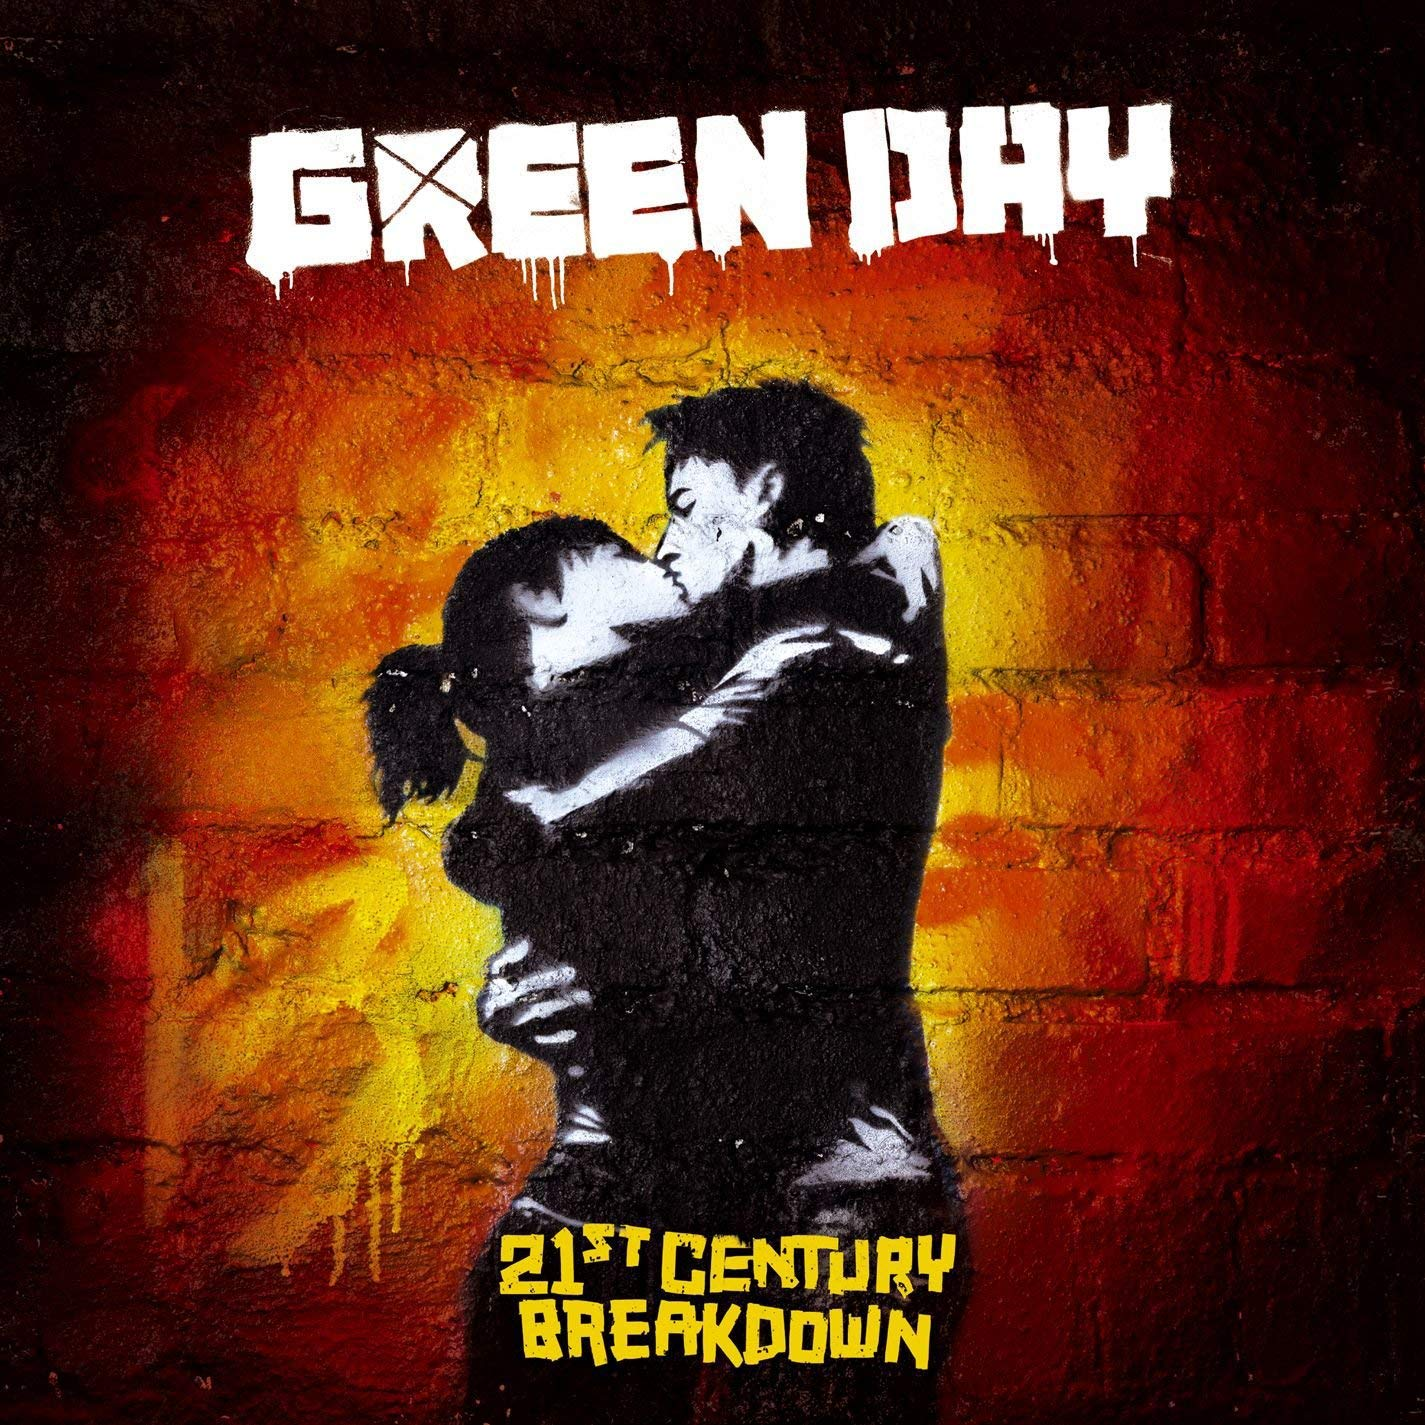 21st Century Breakdown [Vinyl] by VINYL